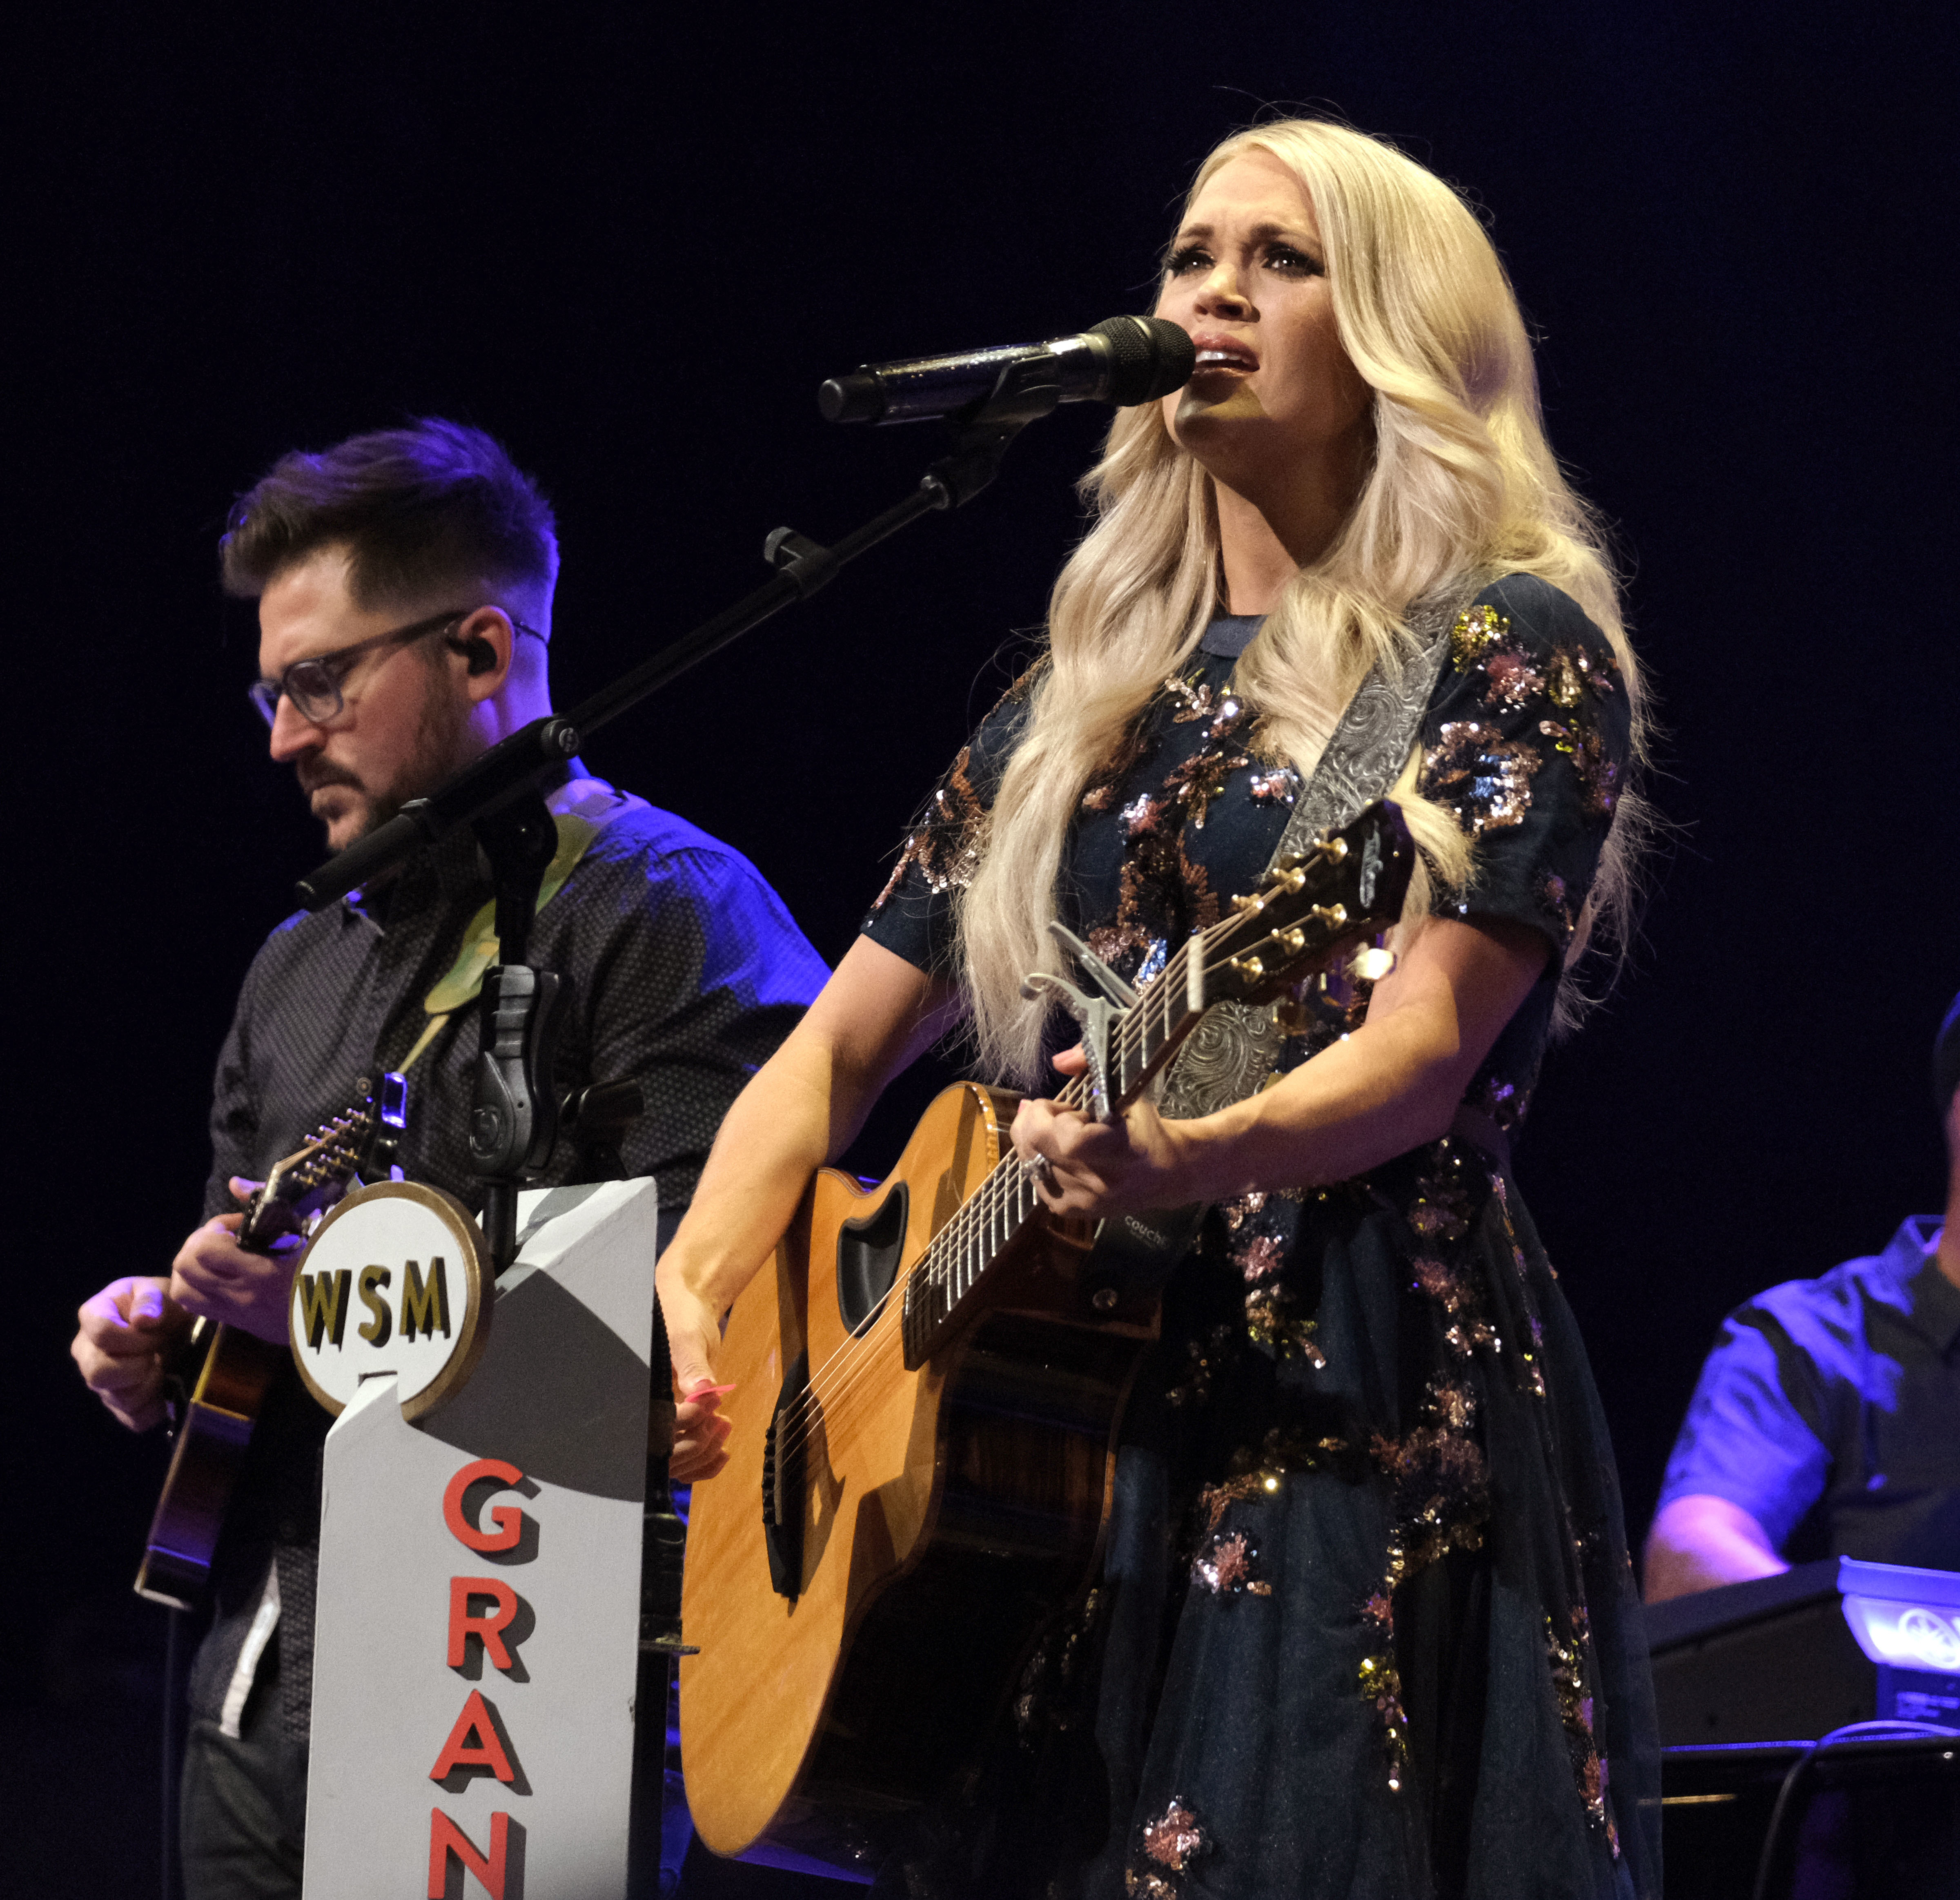 Carrie Underwood performs at The Grand Ole Opry in Nashville on July 19, 2019.